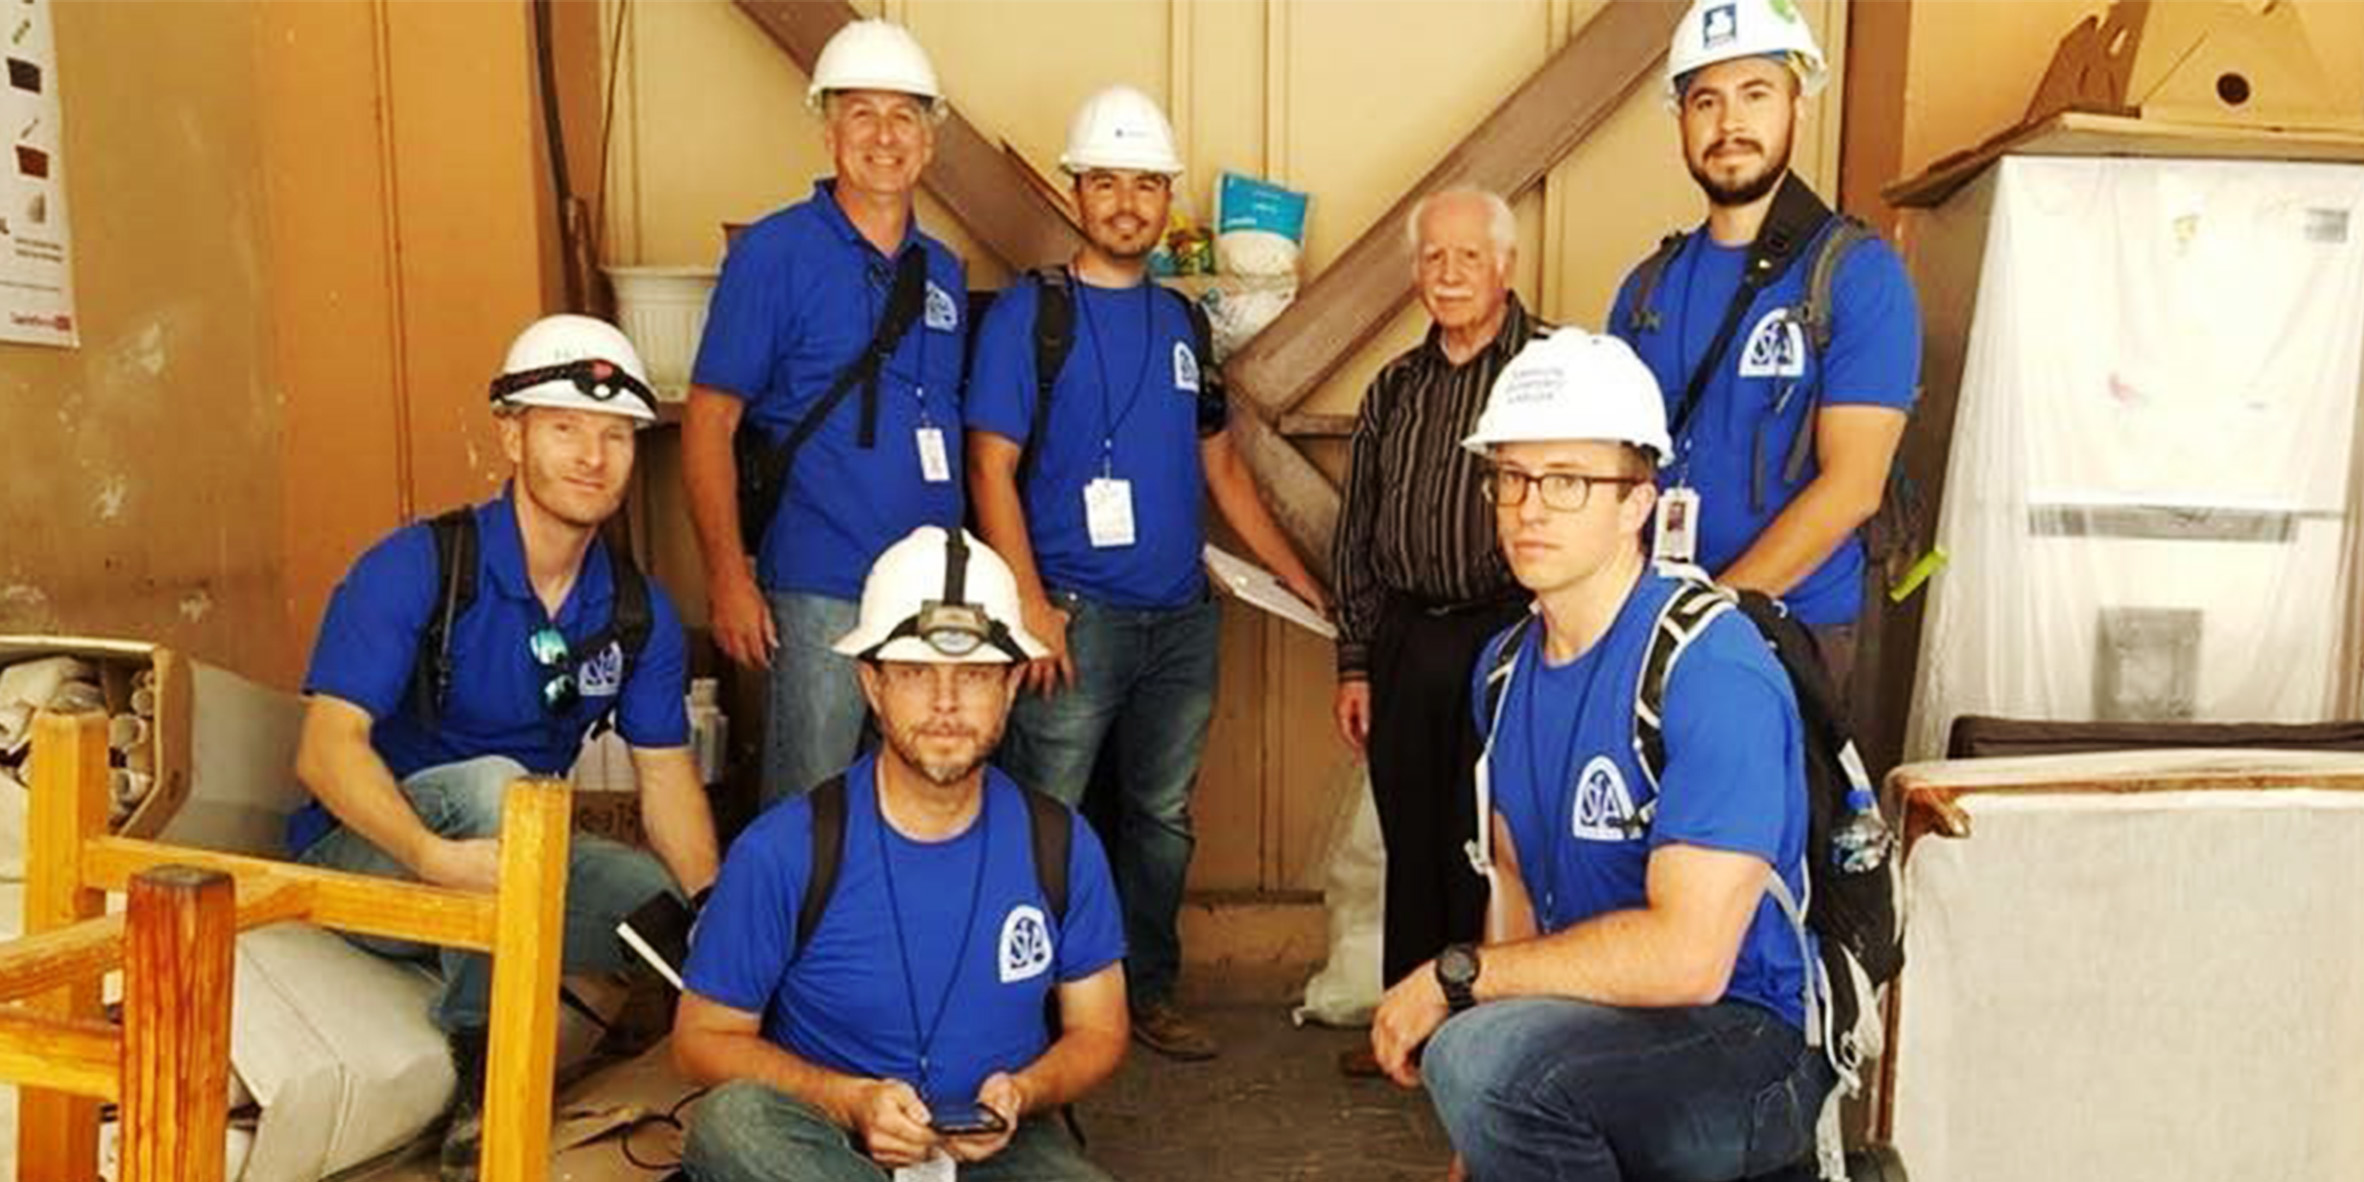 SEAOSC Safer Cities Team in Helmets with Building Owner featuring Dion Marriott, Ken O'Dell, Marty Hudson, Daniel Zepeda, Building Owner, Russell McLellan, Raul Jimenez